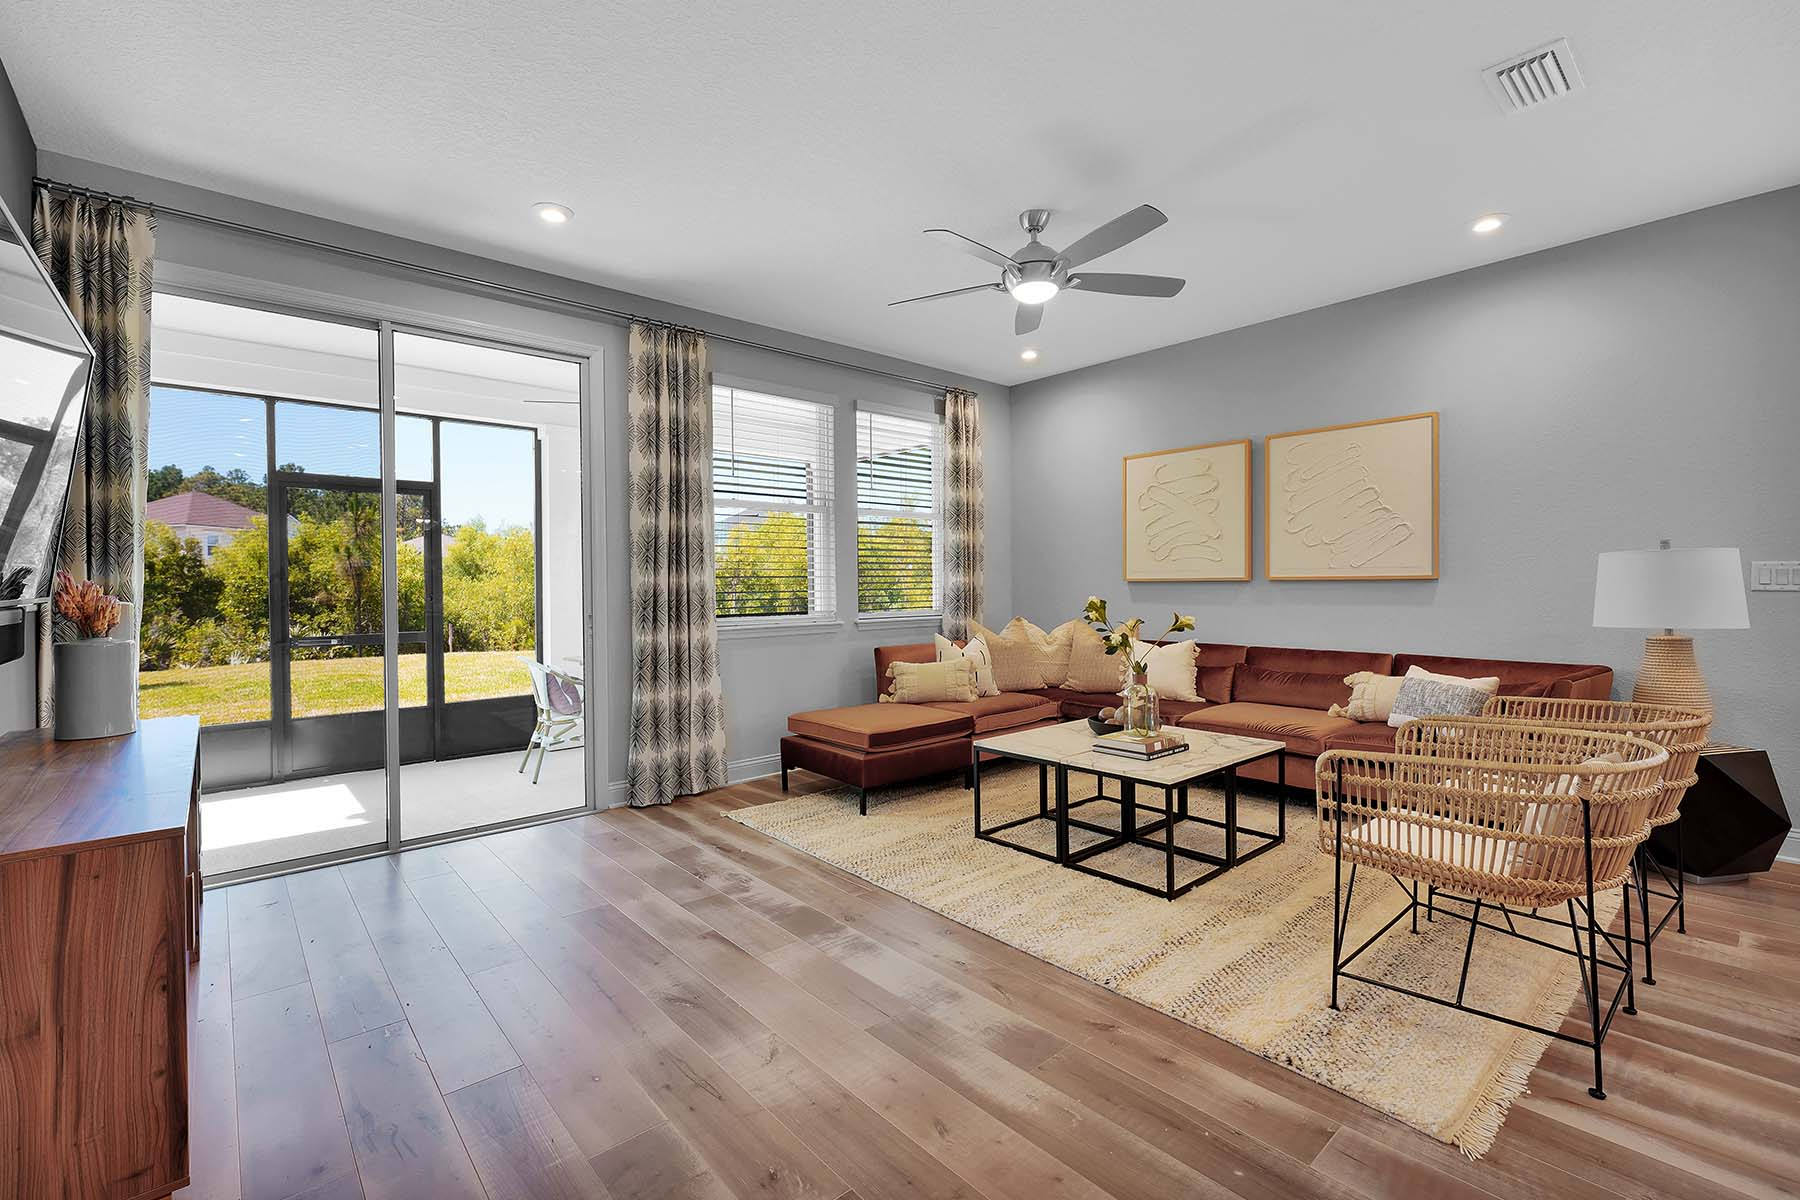 Waverly Plan Greatroom at Pablo Cove in Jacksonville Florida by Mattamy Homes